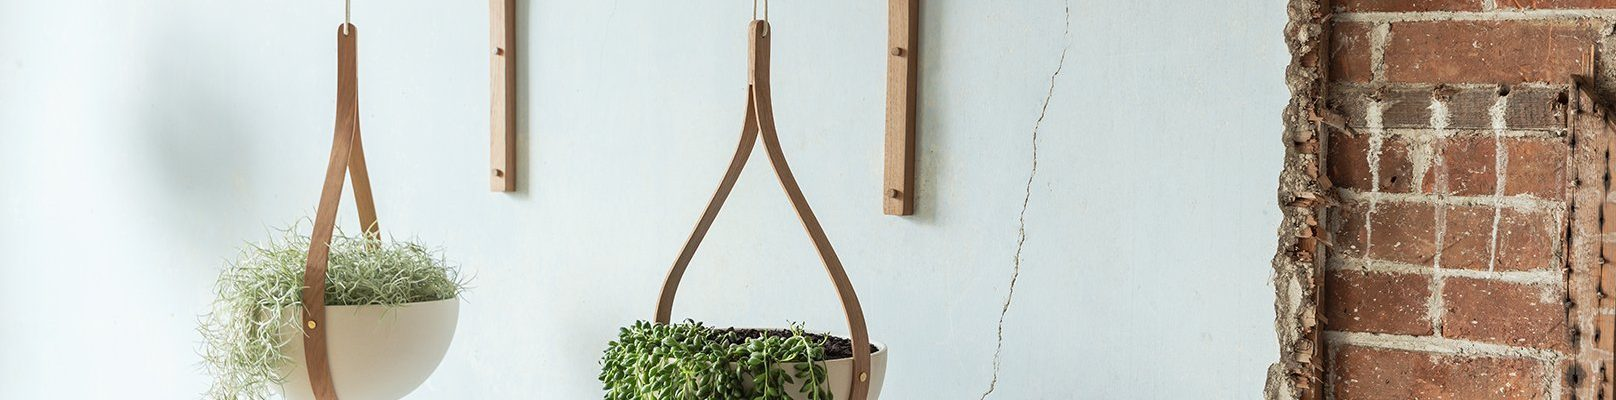 Hanging Planters Furniture20